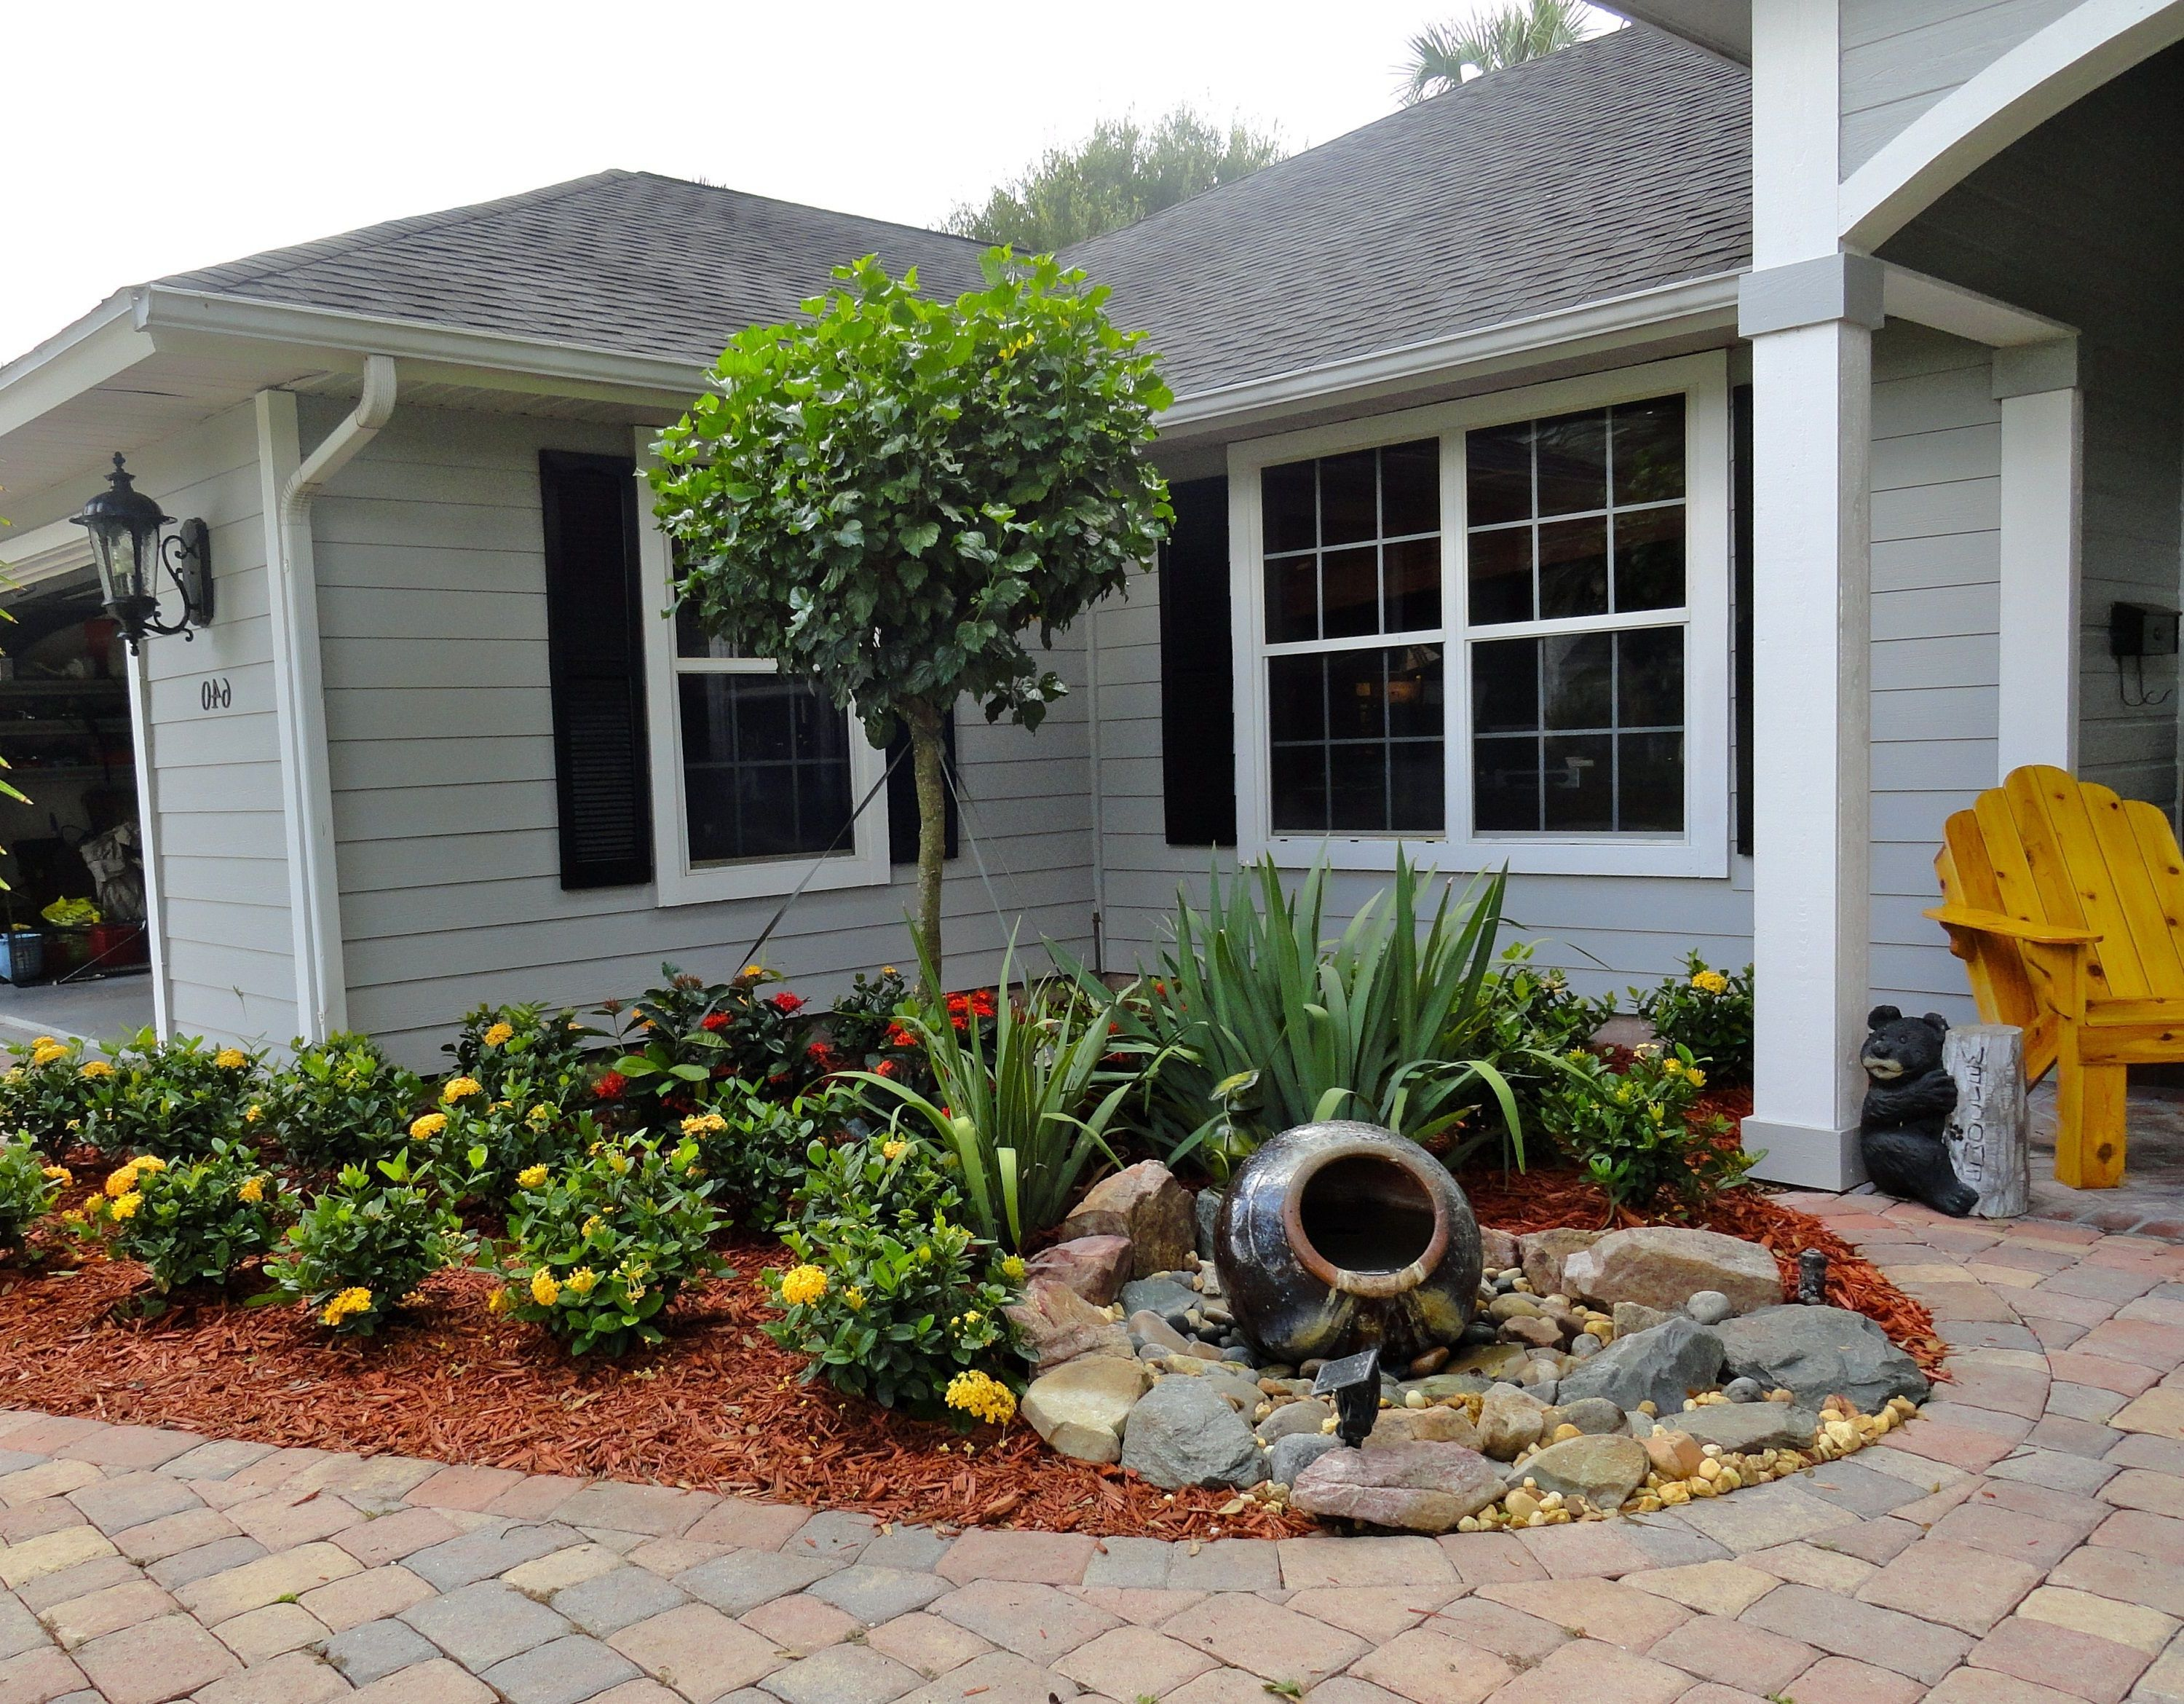 Good Front Yard Landscaping Ideas On A Budget Part - 3: Small Backyard Landscaping Ideas On A Budget